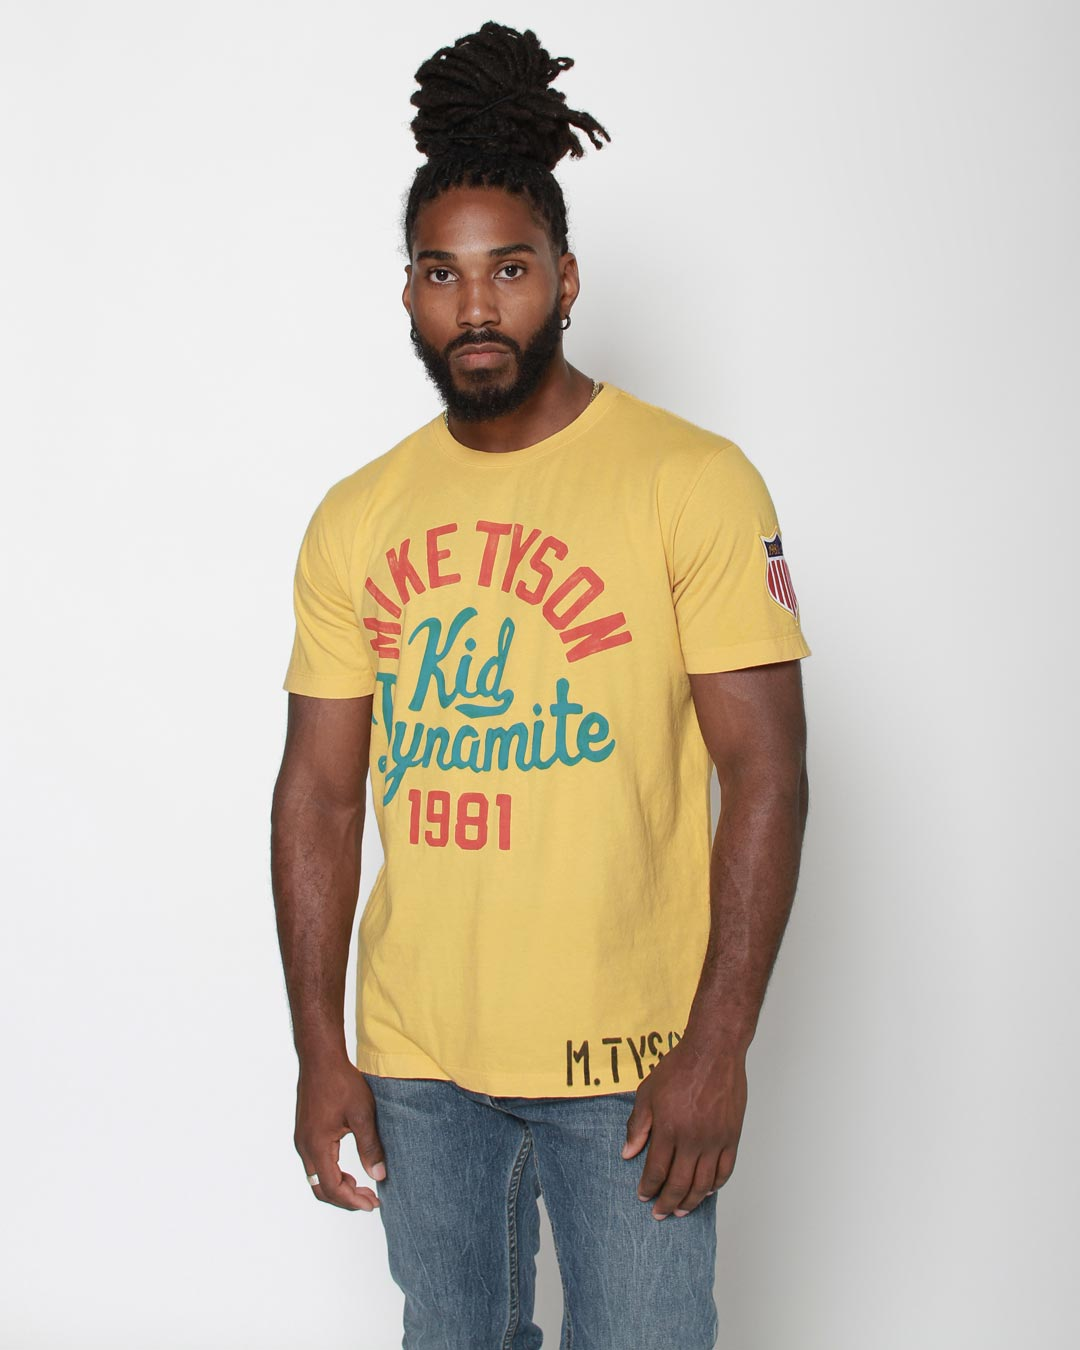 Tyson - Kid Dynamite Yellow Tee